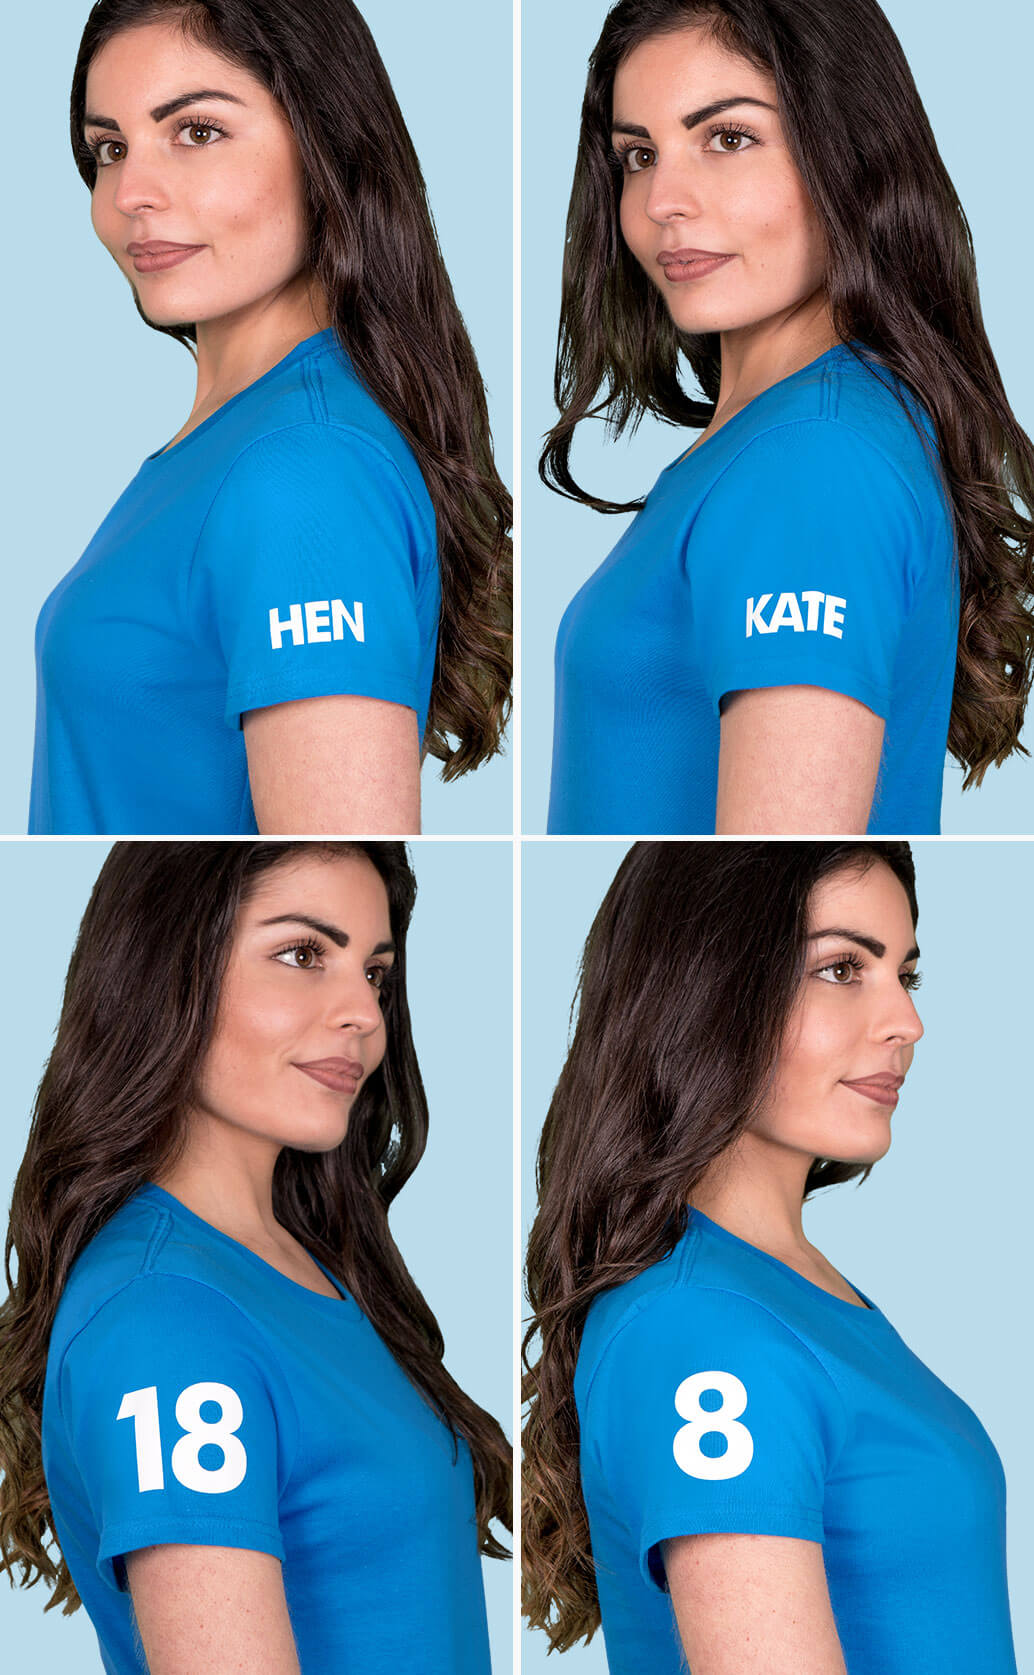 Four medium close-up shots of model in sapphire blue t shirt, each displaying different examples of white sleeve prints including a name, number, year and the word 'hen'. Light blue background